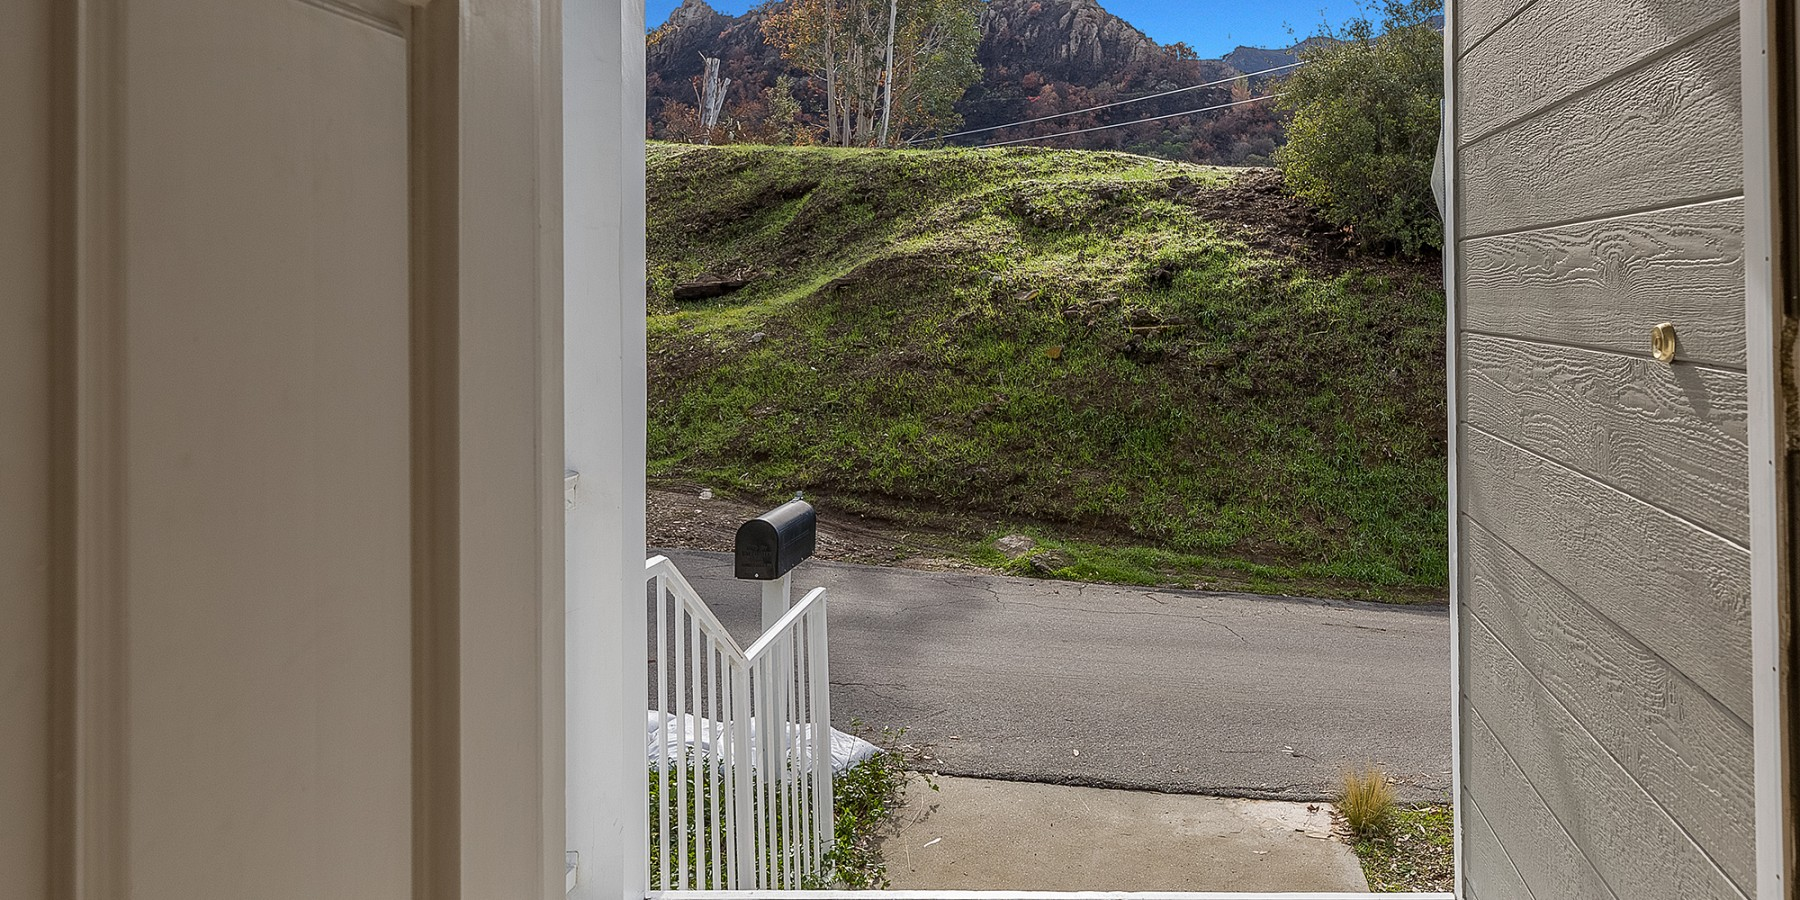 1988 Lookout Dr., Agoura Hills, CA 91301